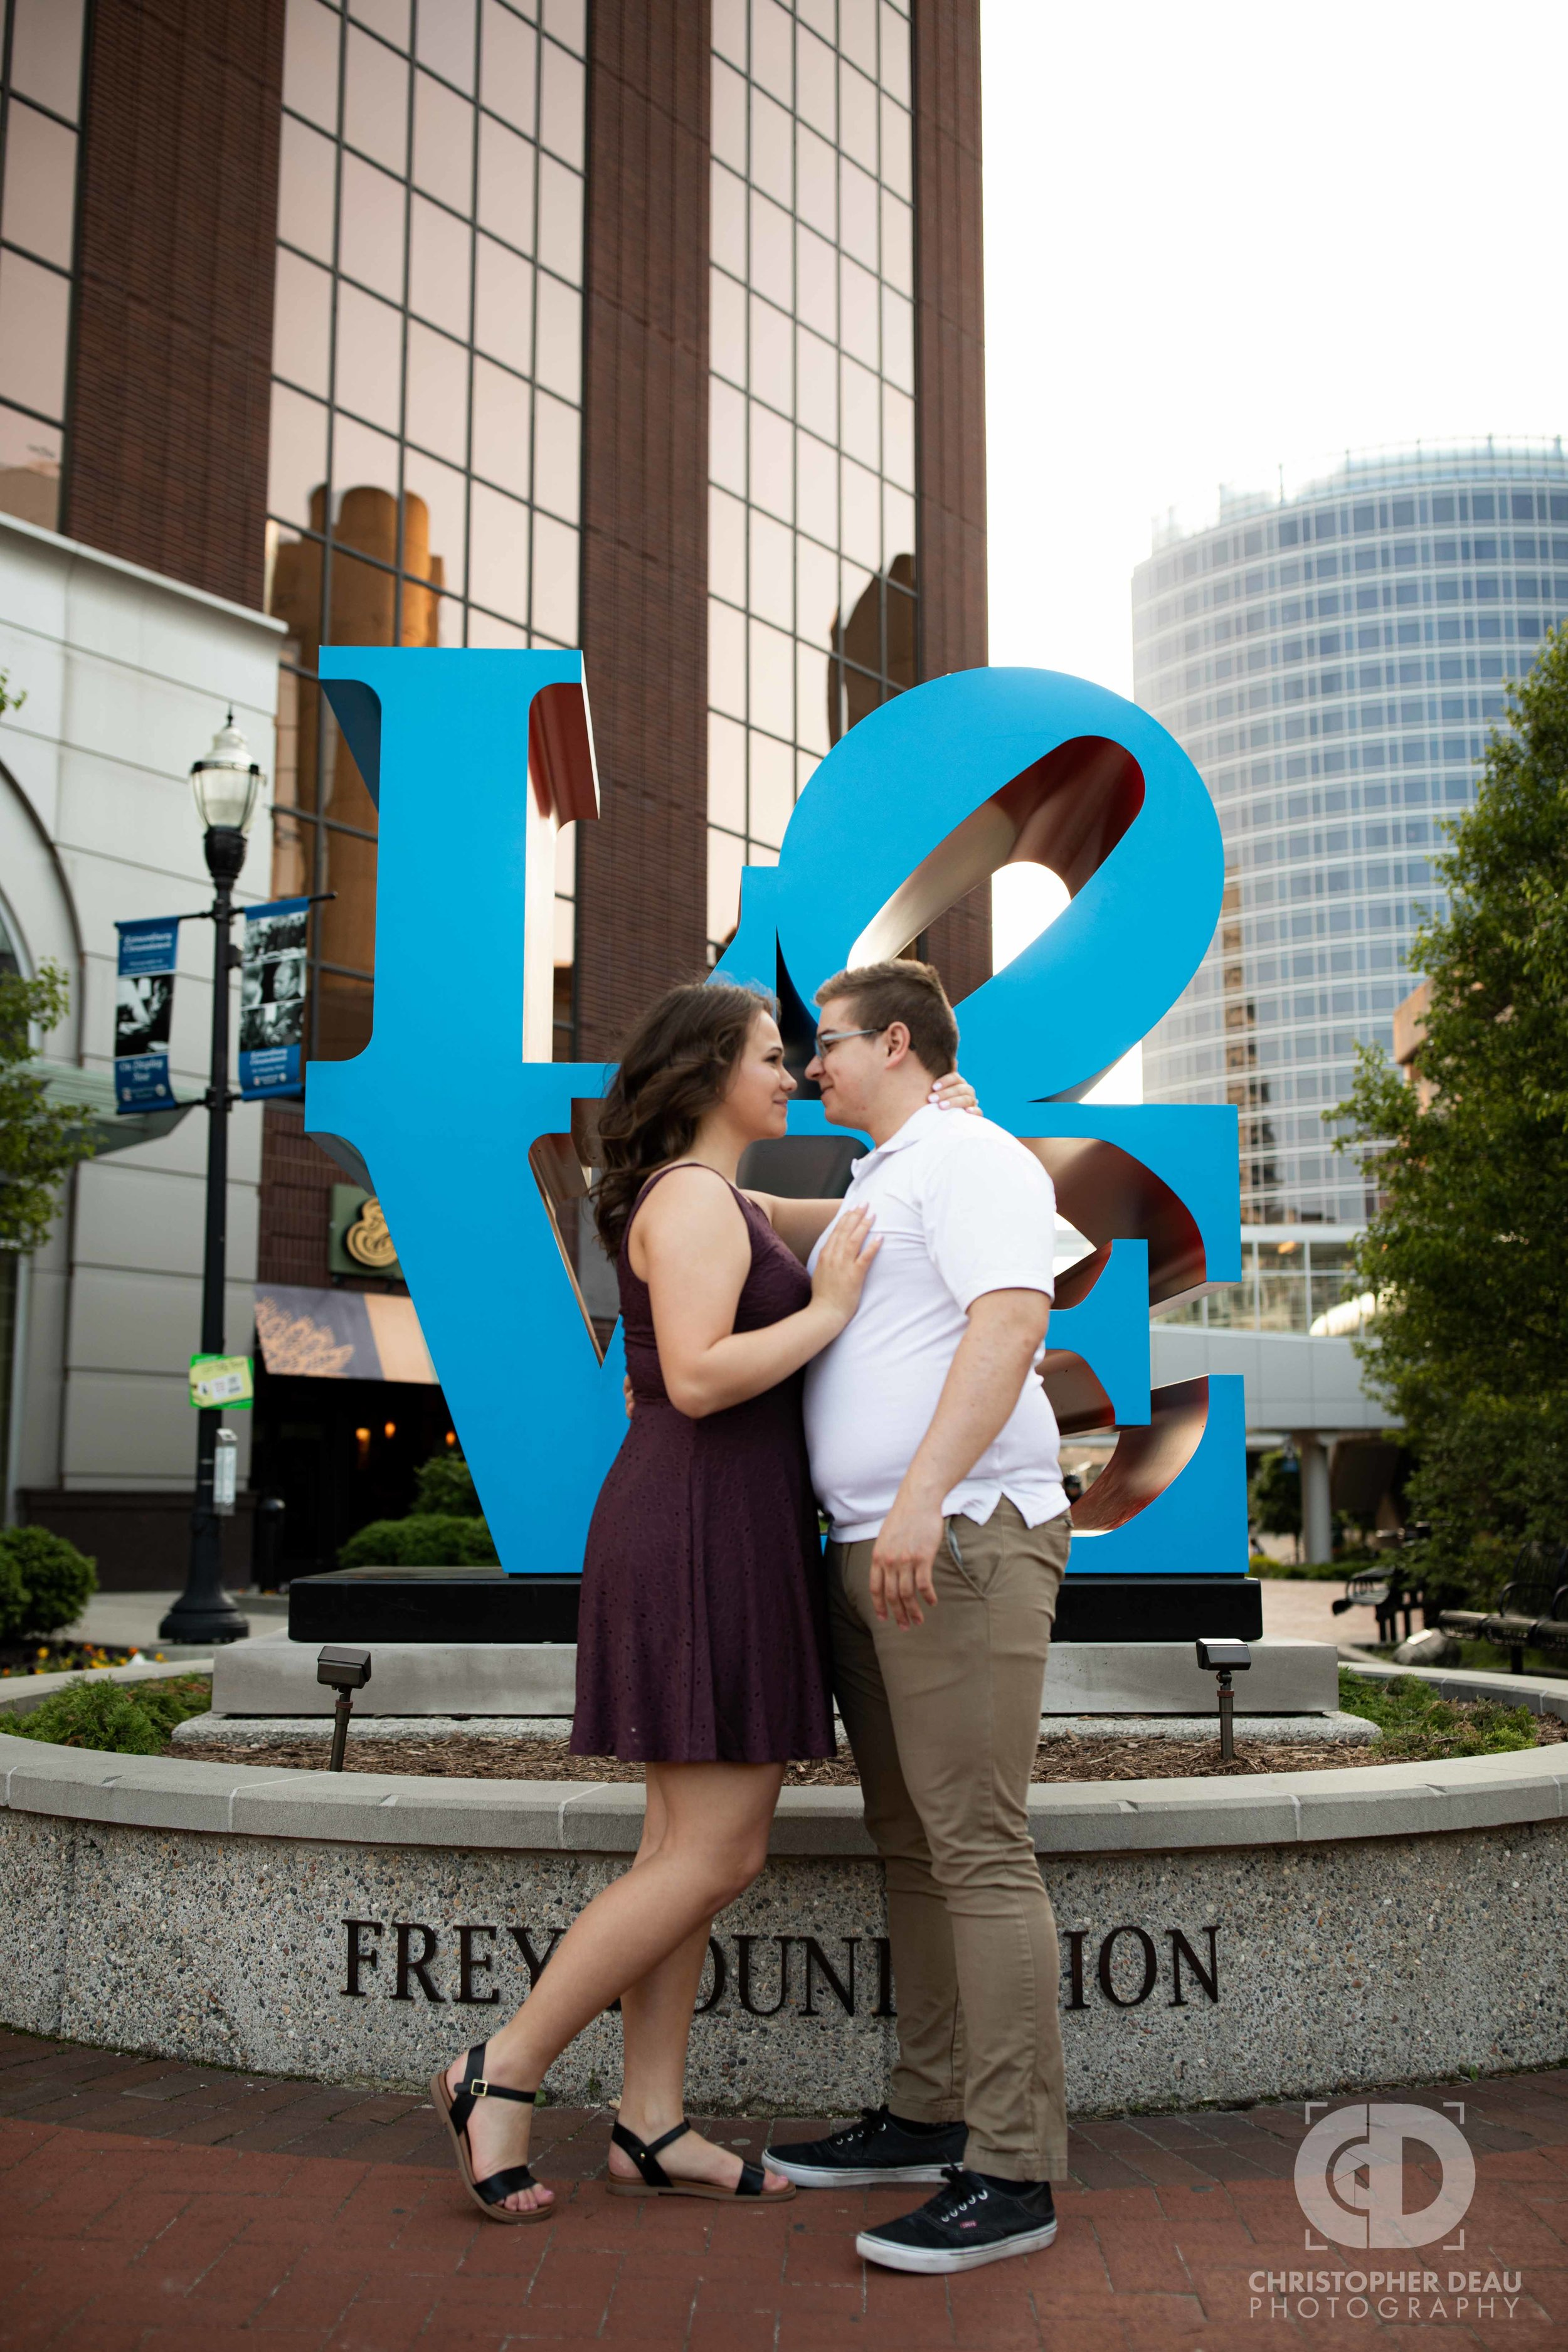 Grand Rapids Love sculpture engagement session.jpg